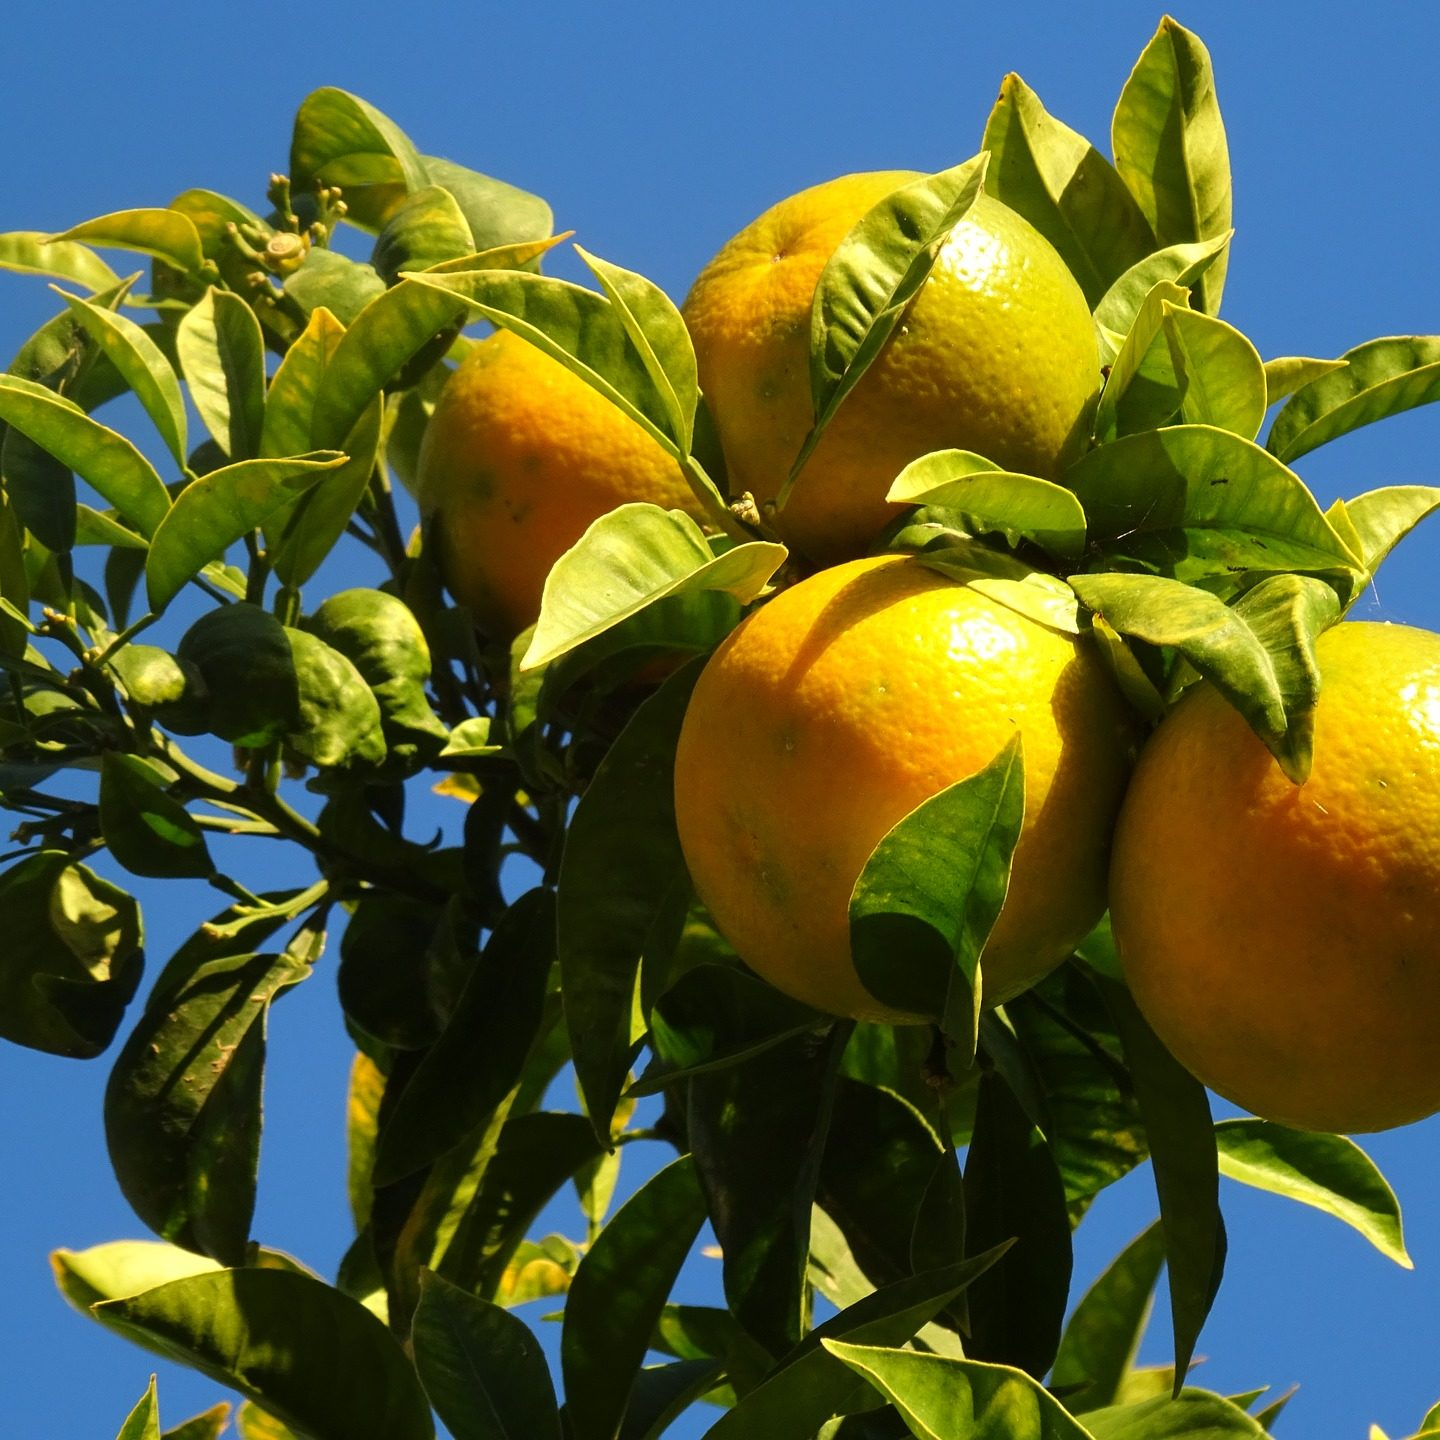 Scientists rearrange 'chaotic' citrus family tree